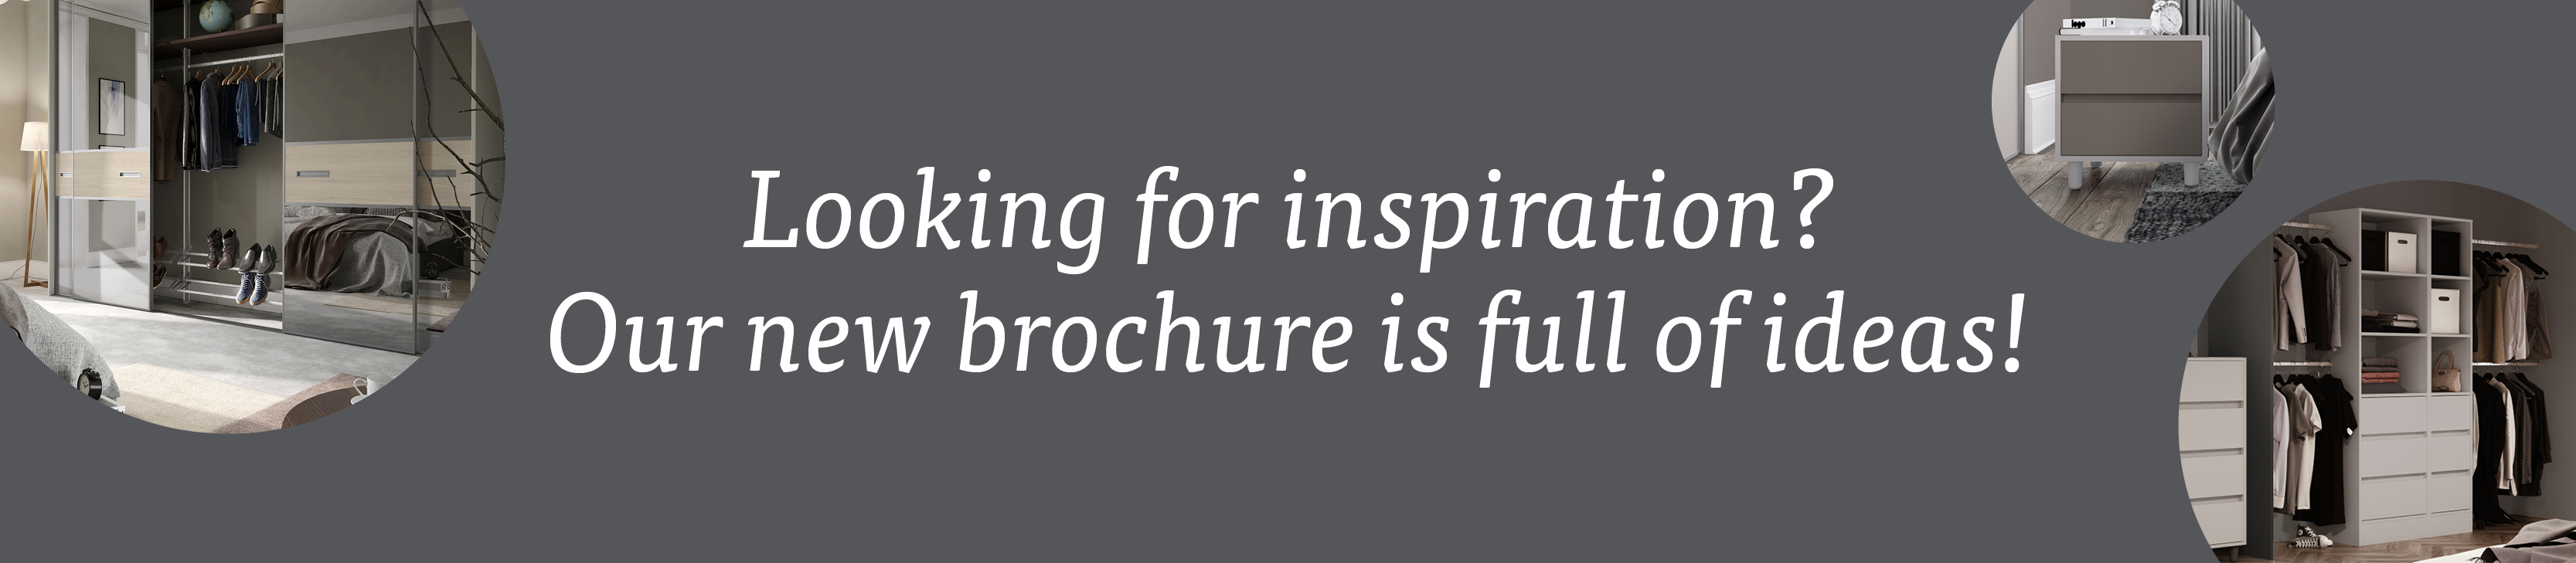 Looking for inspiration? Our new brochure is full of ideas